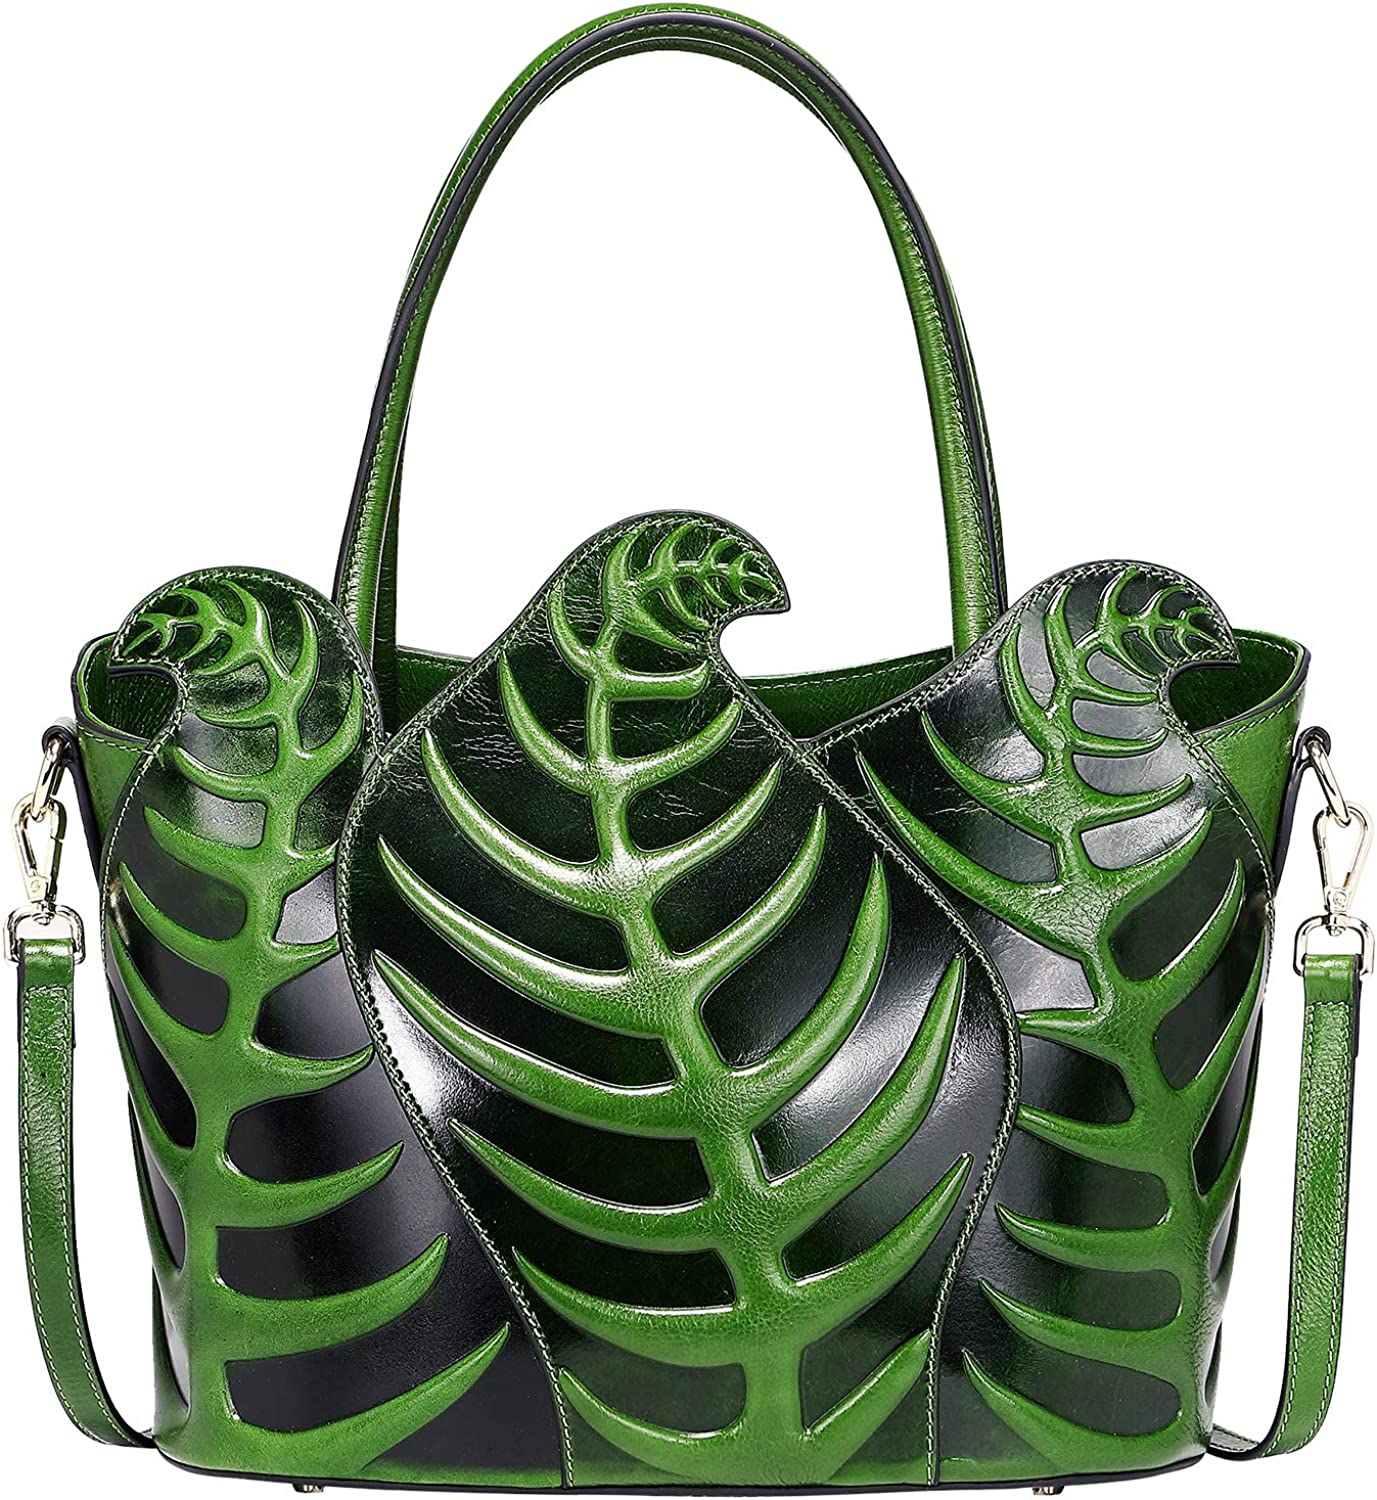 Pijushi Designer Inspired Ladies Top Handle Handbags Embossed Leather Satchel Tote Shoulder Bags 22353 (Green)